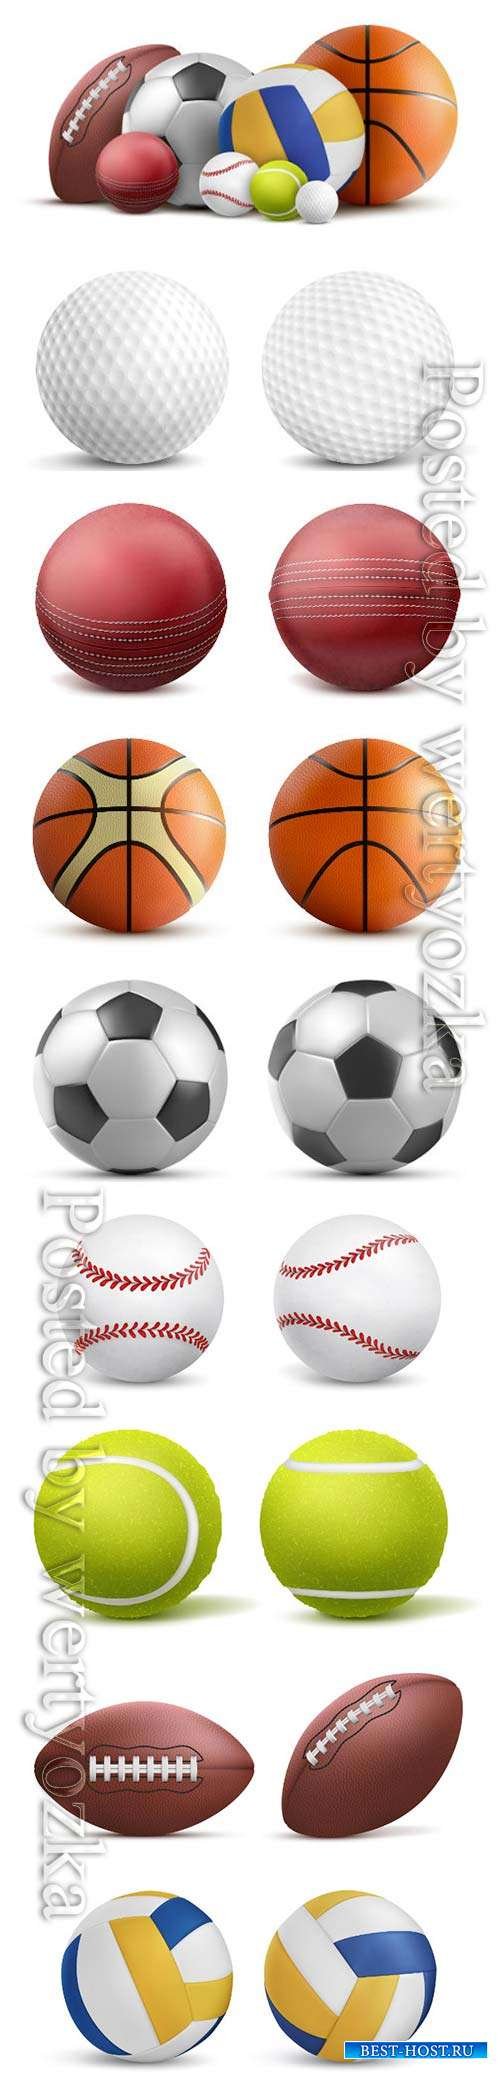 Sports balls, soccer, volleyball, baseball, tennis, golf, rugby vector temp ...